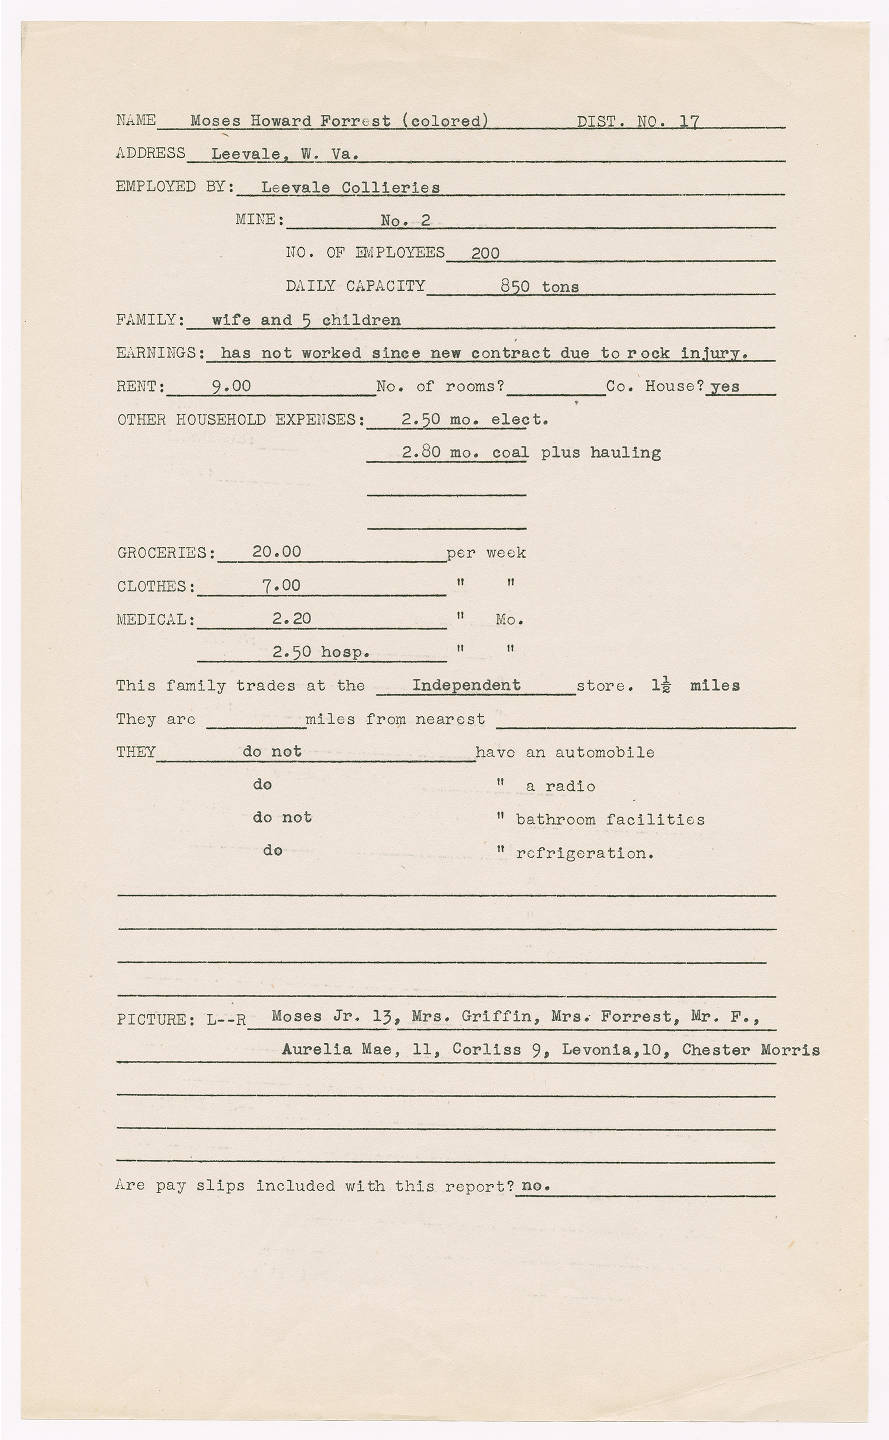 Item 11 Of 11 United Mine Workers Of America Photographic Graphic And Artifacts Collection Penn State University Libraries Digital Collections Software developer, armchair astronomer w/ ancient caltech degree, picking stick player and luna lee fan. penn state university libraries